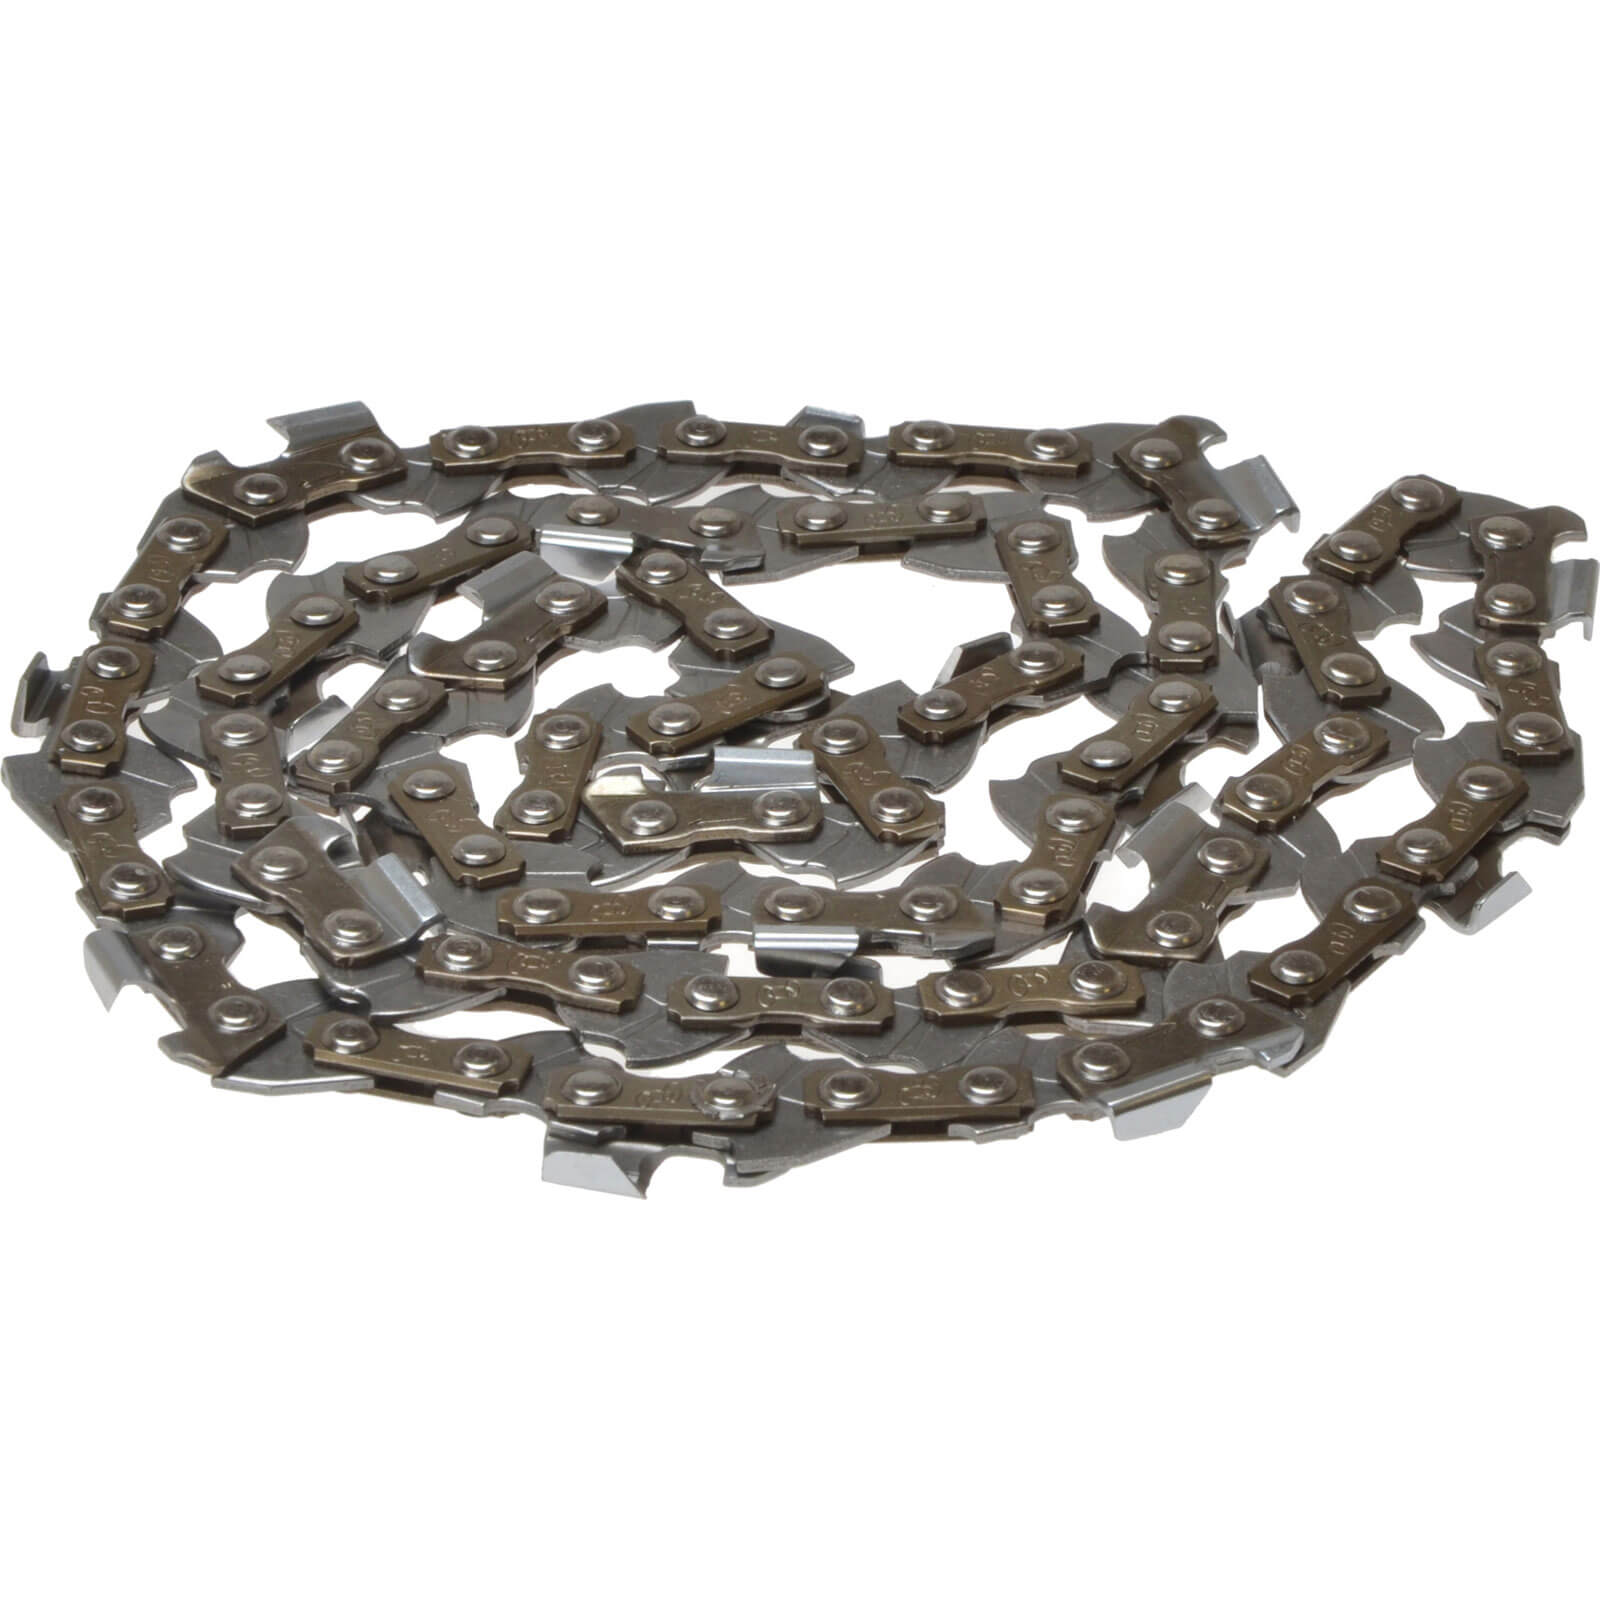 ALM Replacement Chainsaw Chain 3/8&quot x 45 Links Fits Bosch 30cm Chainsaws